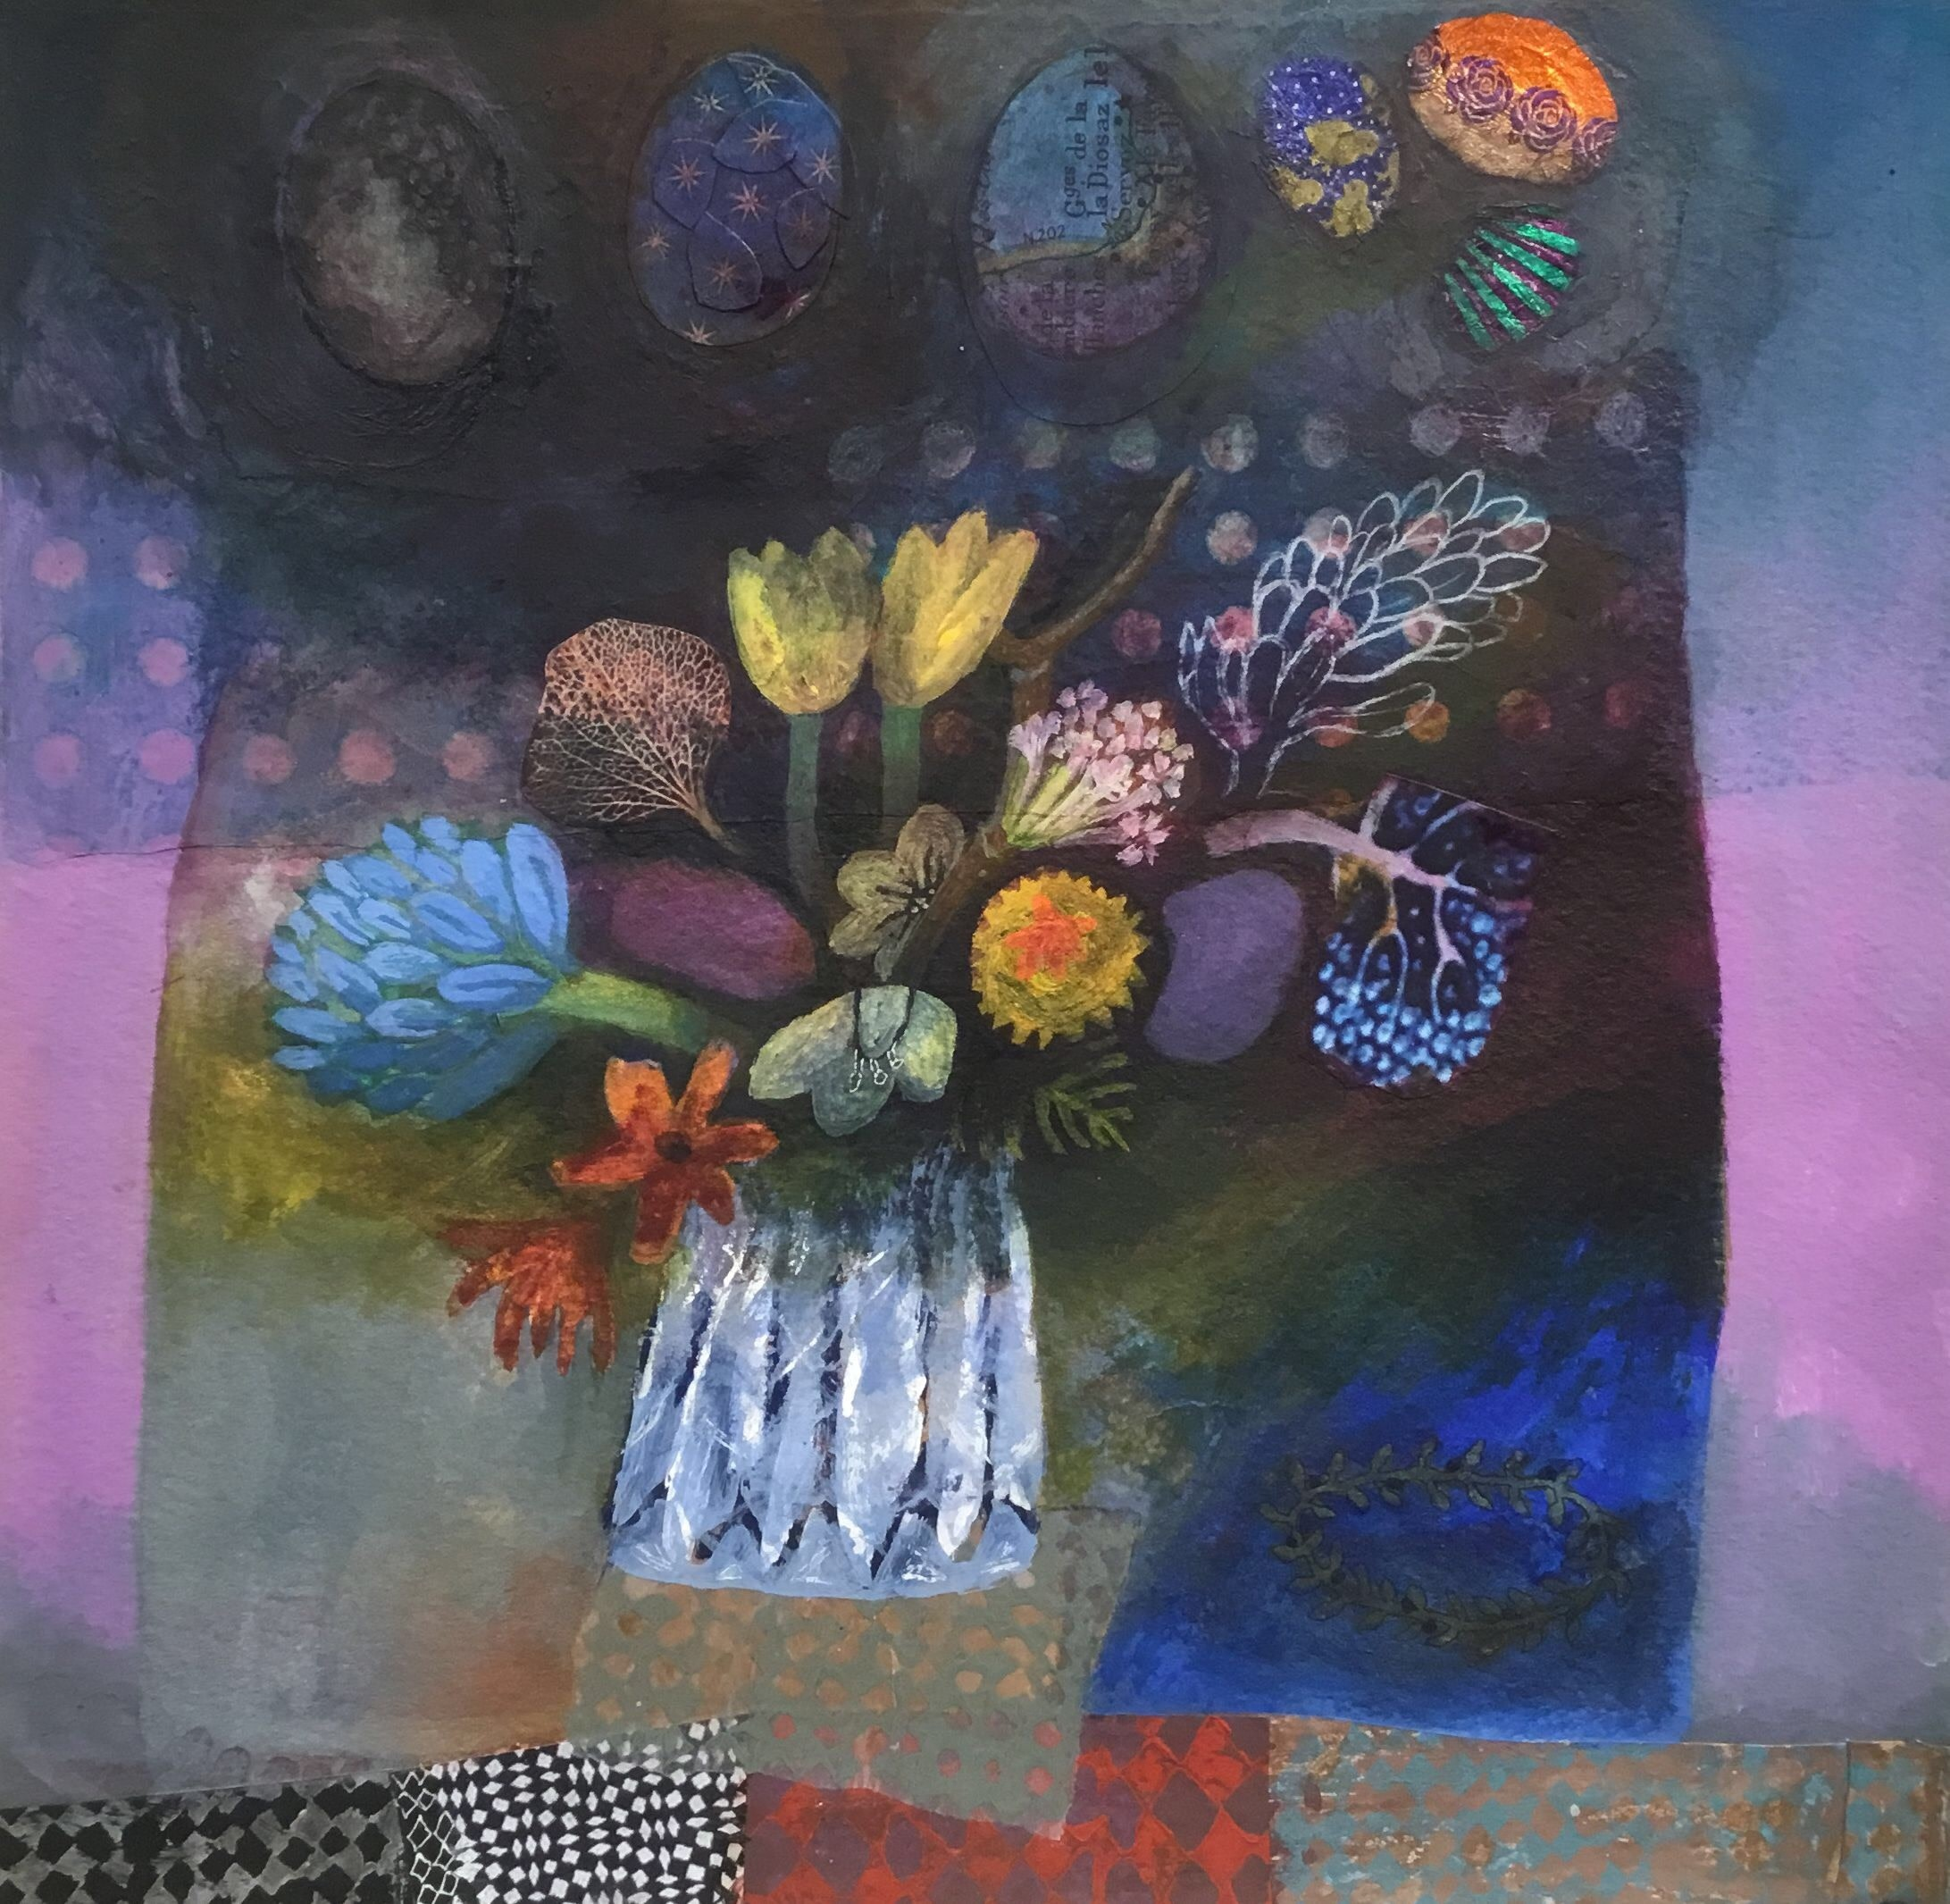 """<span class=""""link fancybox-details-link""""><a href=""""/artists/146-gertie-young/works/11274-gertie-young-spring-flowers-with-easter-eggs/"""">View Detail Page</a></span><div class=""""artist""""><span class=""""artist""""><strong>Gertie Young</strong></span></div><div class=""""title""""><em>Spring Flowers with Easter Eggs</em></div><div class=""""medium"""">watercolour, gouache & collage</div><div class=""""dimensions"""">40x40cm</div><div class=""""price"""">£360.00</div>"""